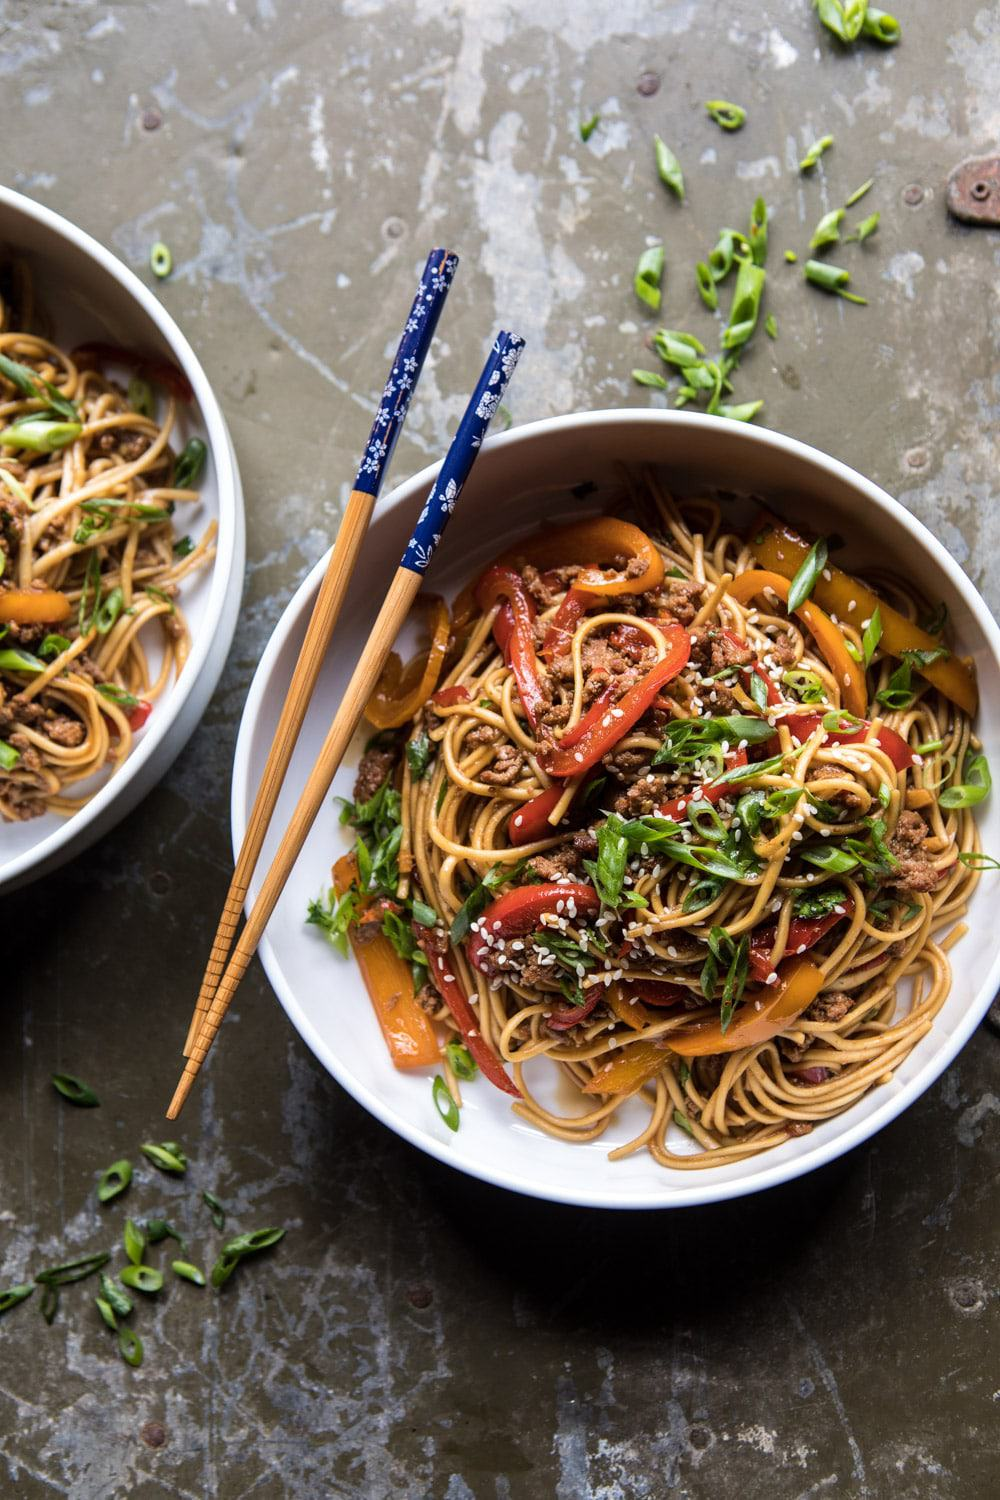 Weeknight 20 Minute Spicy Udon Noodles | halfbakedharvest.com #quick #easy #summerrecipe #healthy